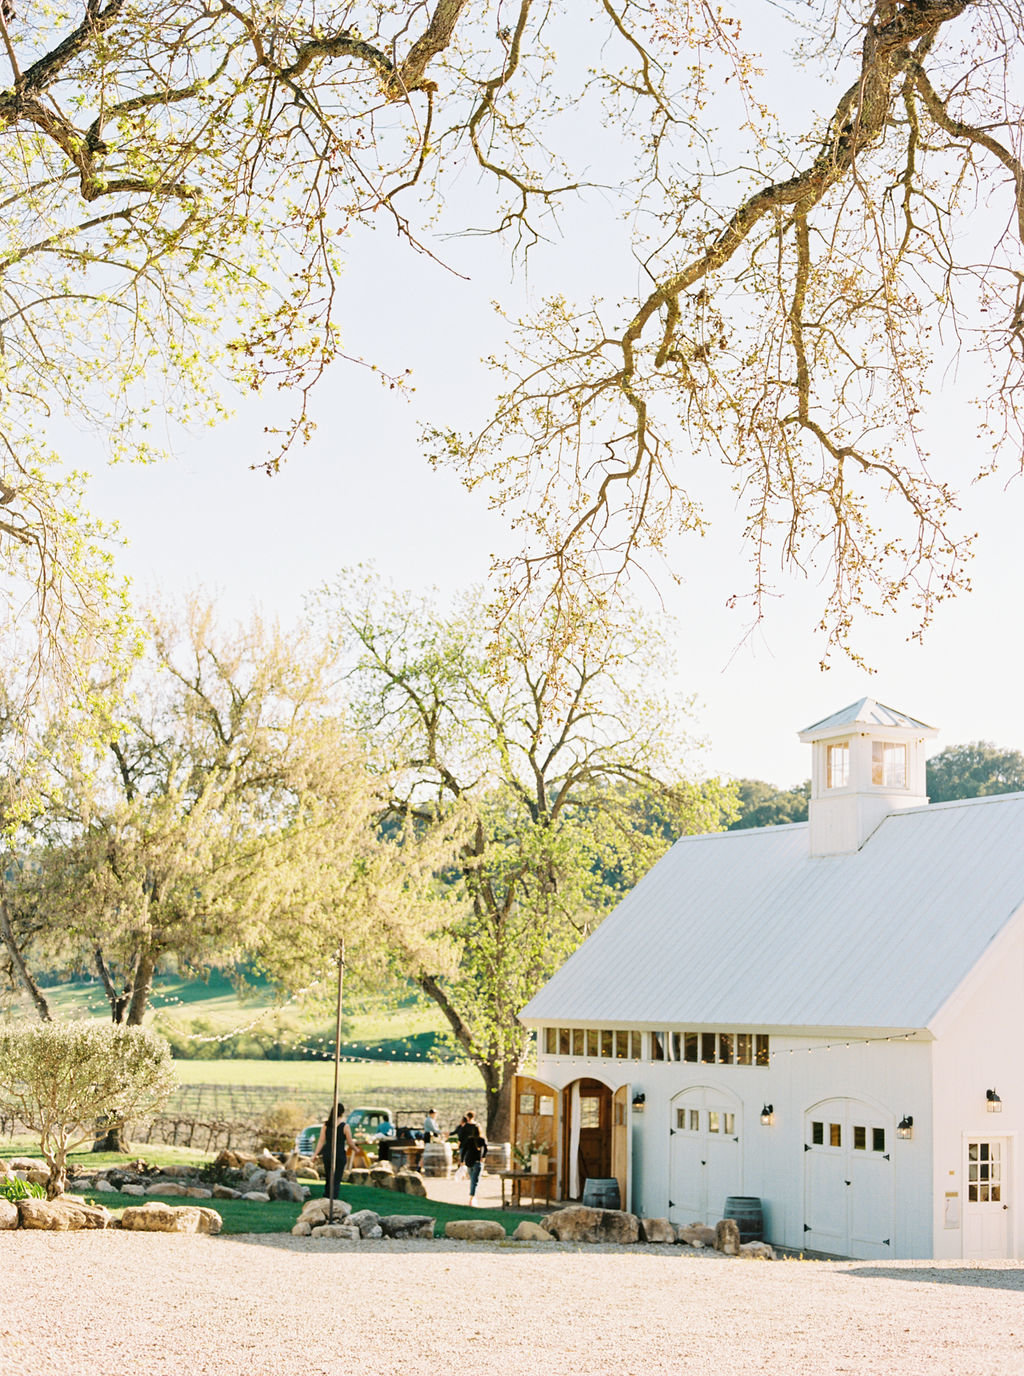 Hammersky-Vineyards-Wedding-by-San-Luis-Obispo-Wedding-Planner-Embark-Event-Design-29